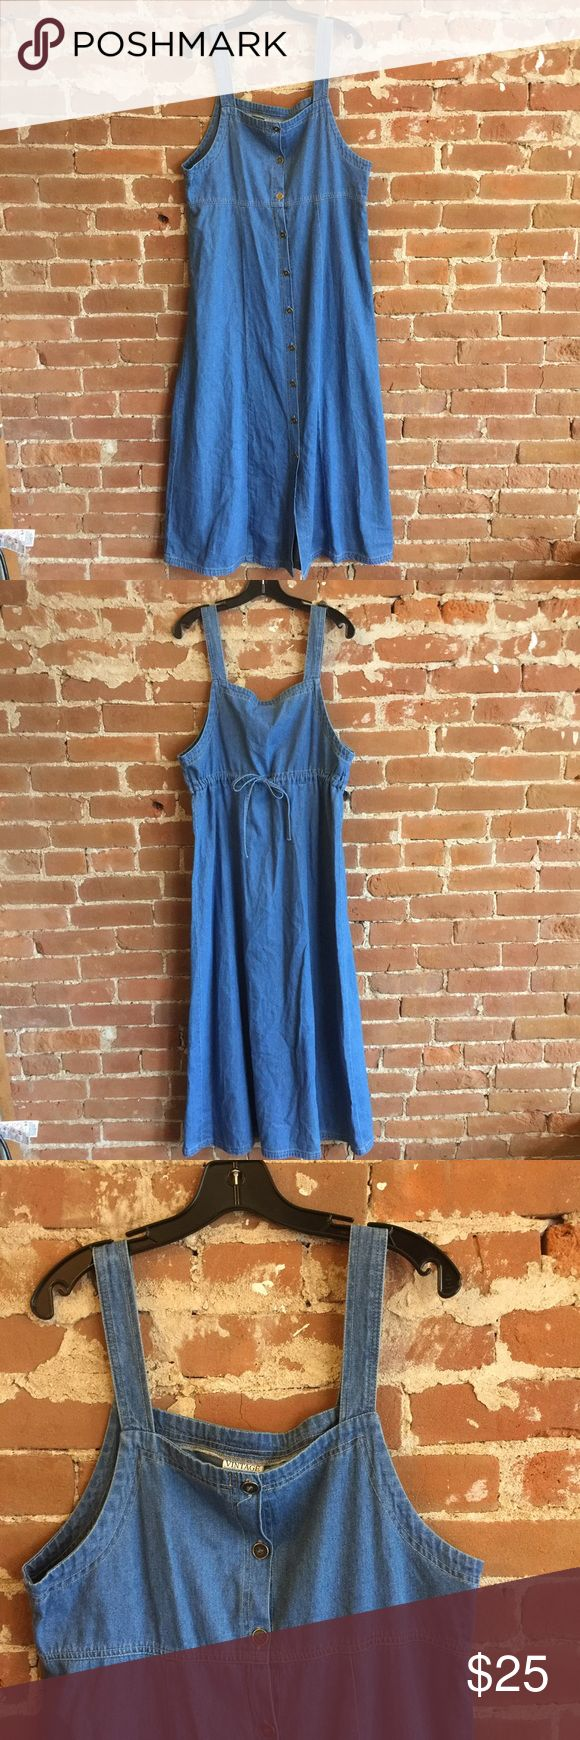 Cute denim long jumper. Maxi dress or long vest Vintage denim maxi. Completely unbuttoned's would be fun long vest. Drawstring ties in the back. In great condition Vintage Dresses Maxi